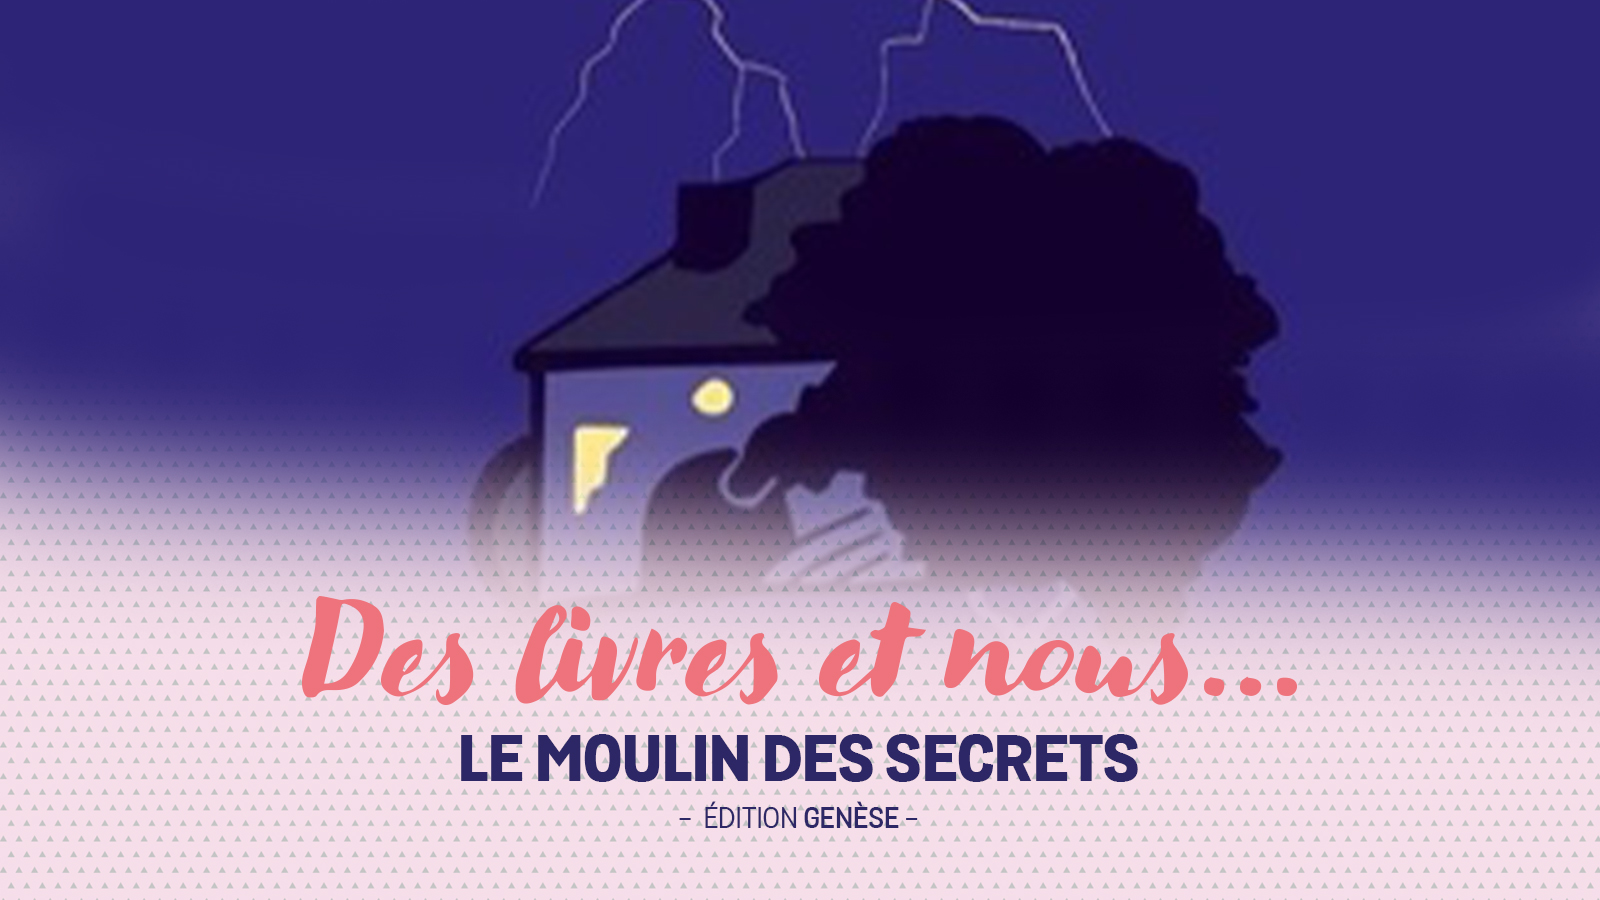 Un moulin plein de secrets